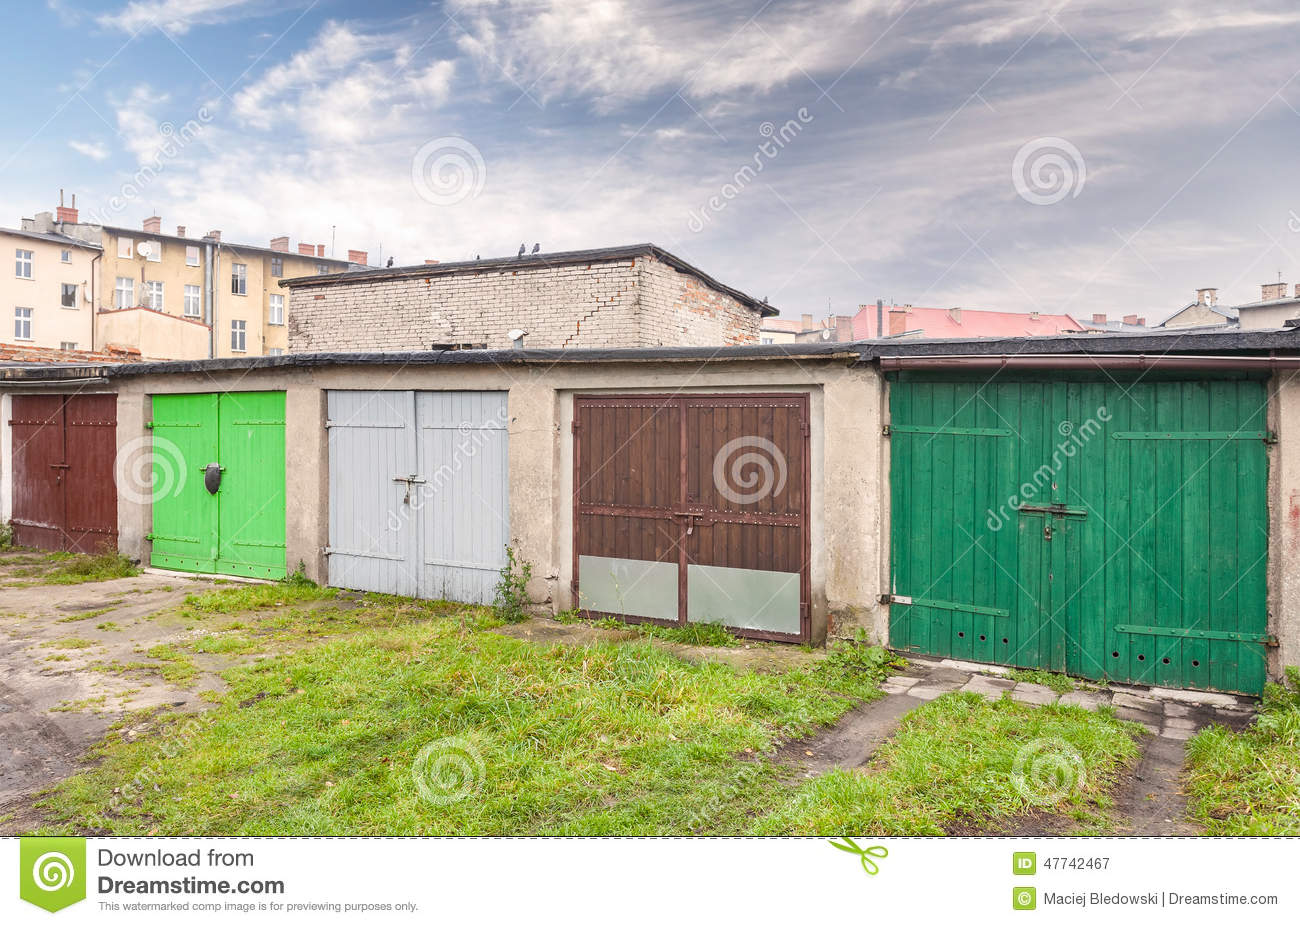 926 #278260 Row Of Garage Doors In Slum Area Stock Photo Image: 47742467 wallpaper Garage Doors In My Area 37451300